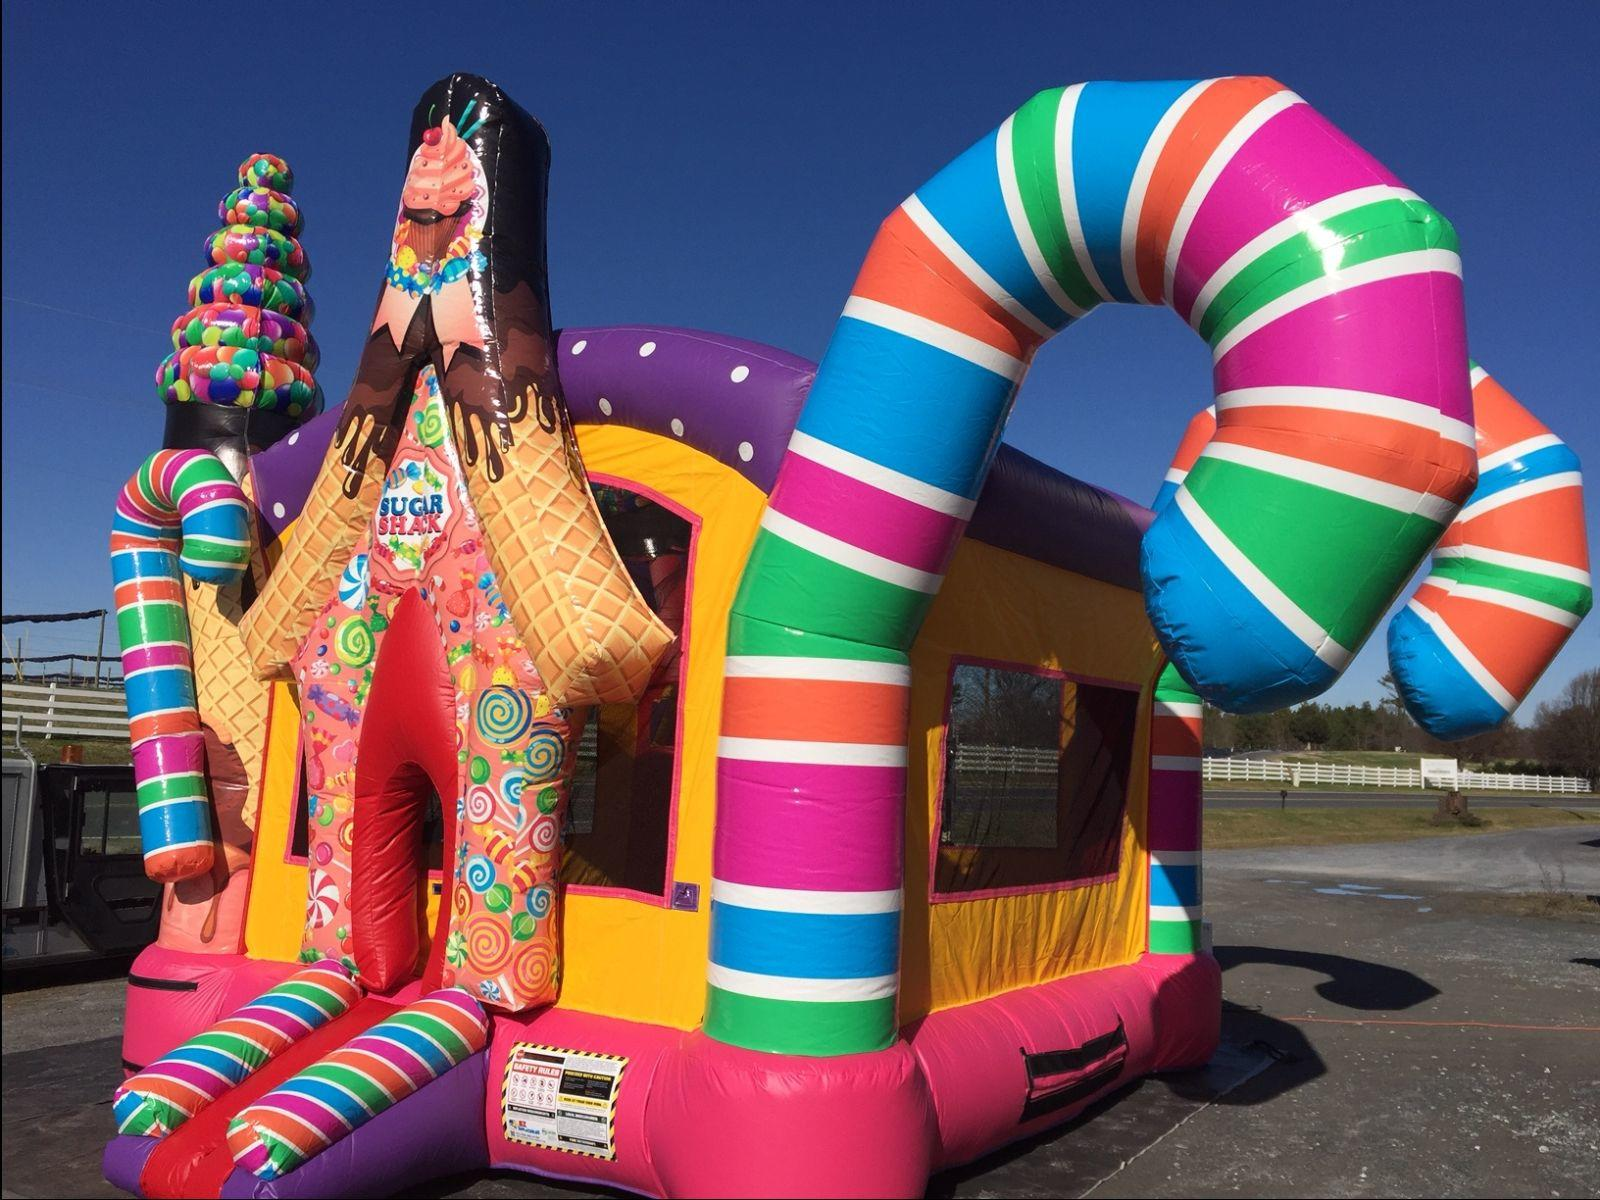 Sugar Shack Bounce House Party Rentals